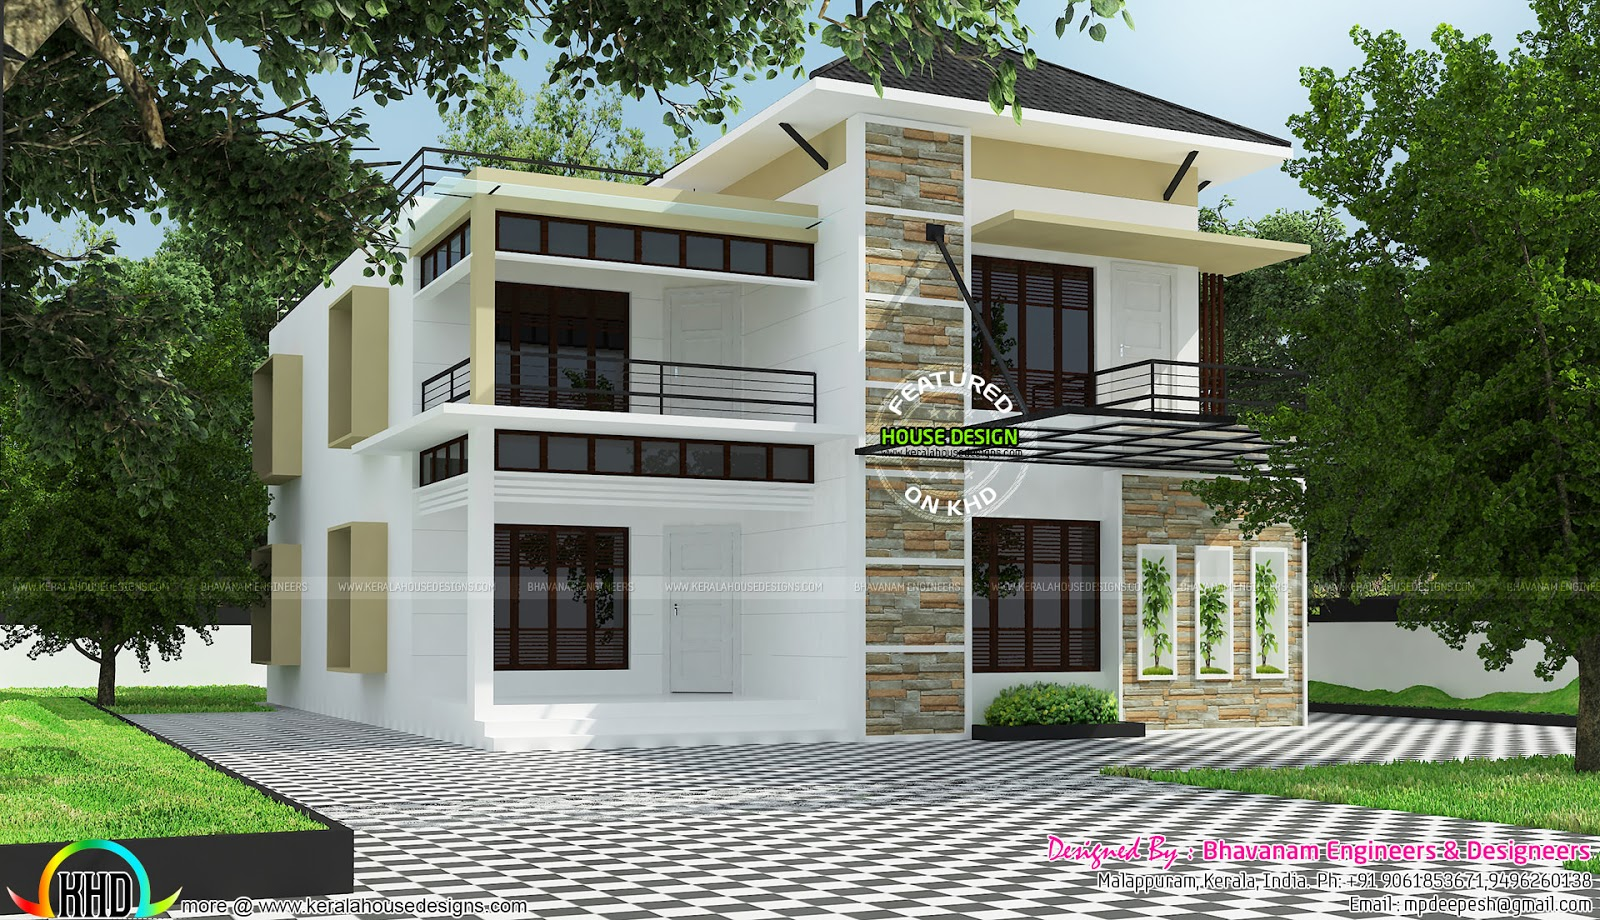 Old house remodeling plan kerala home design and floor plans Old home renovation in kerala